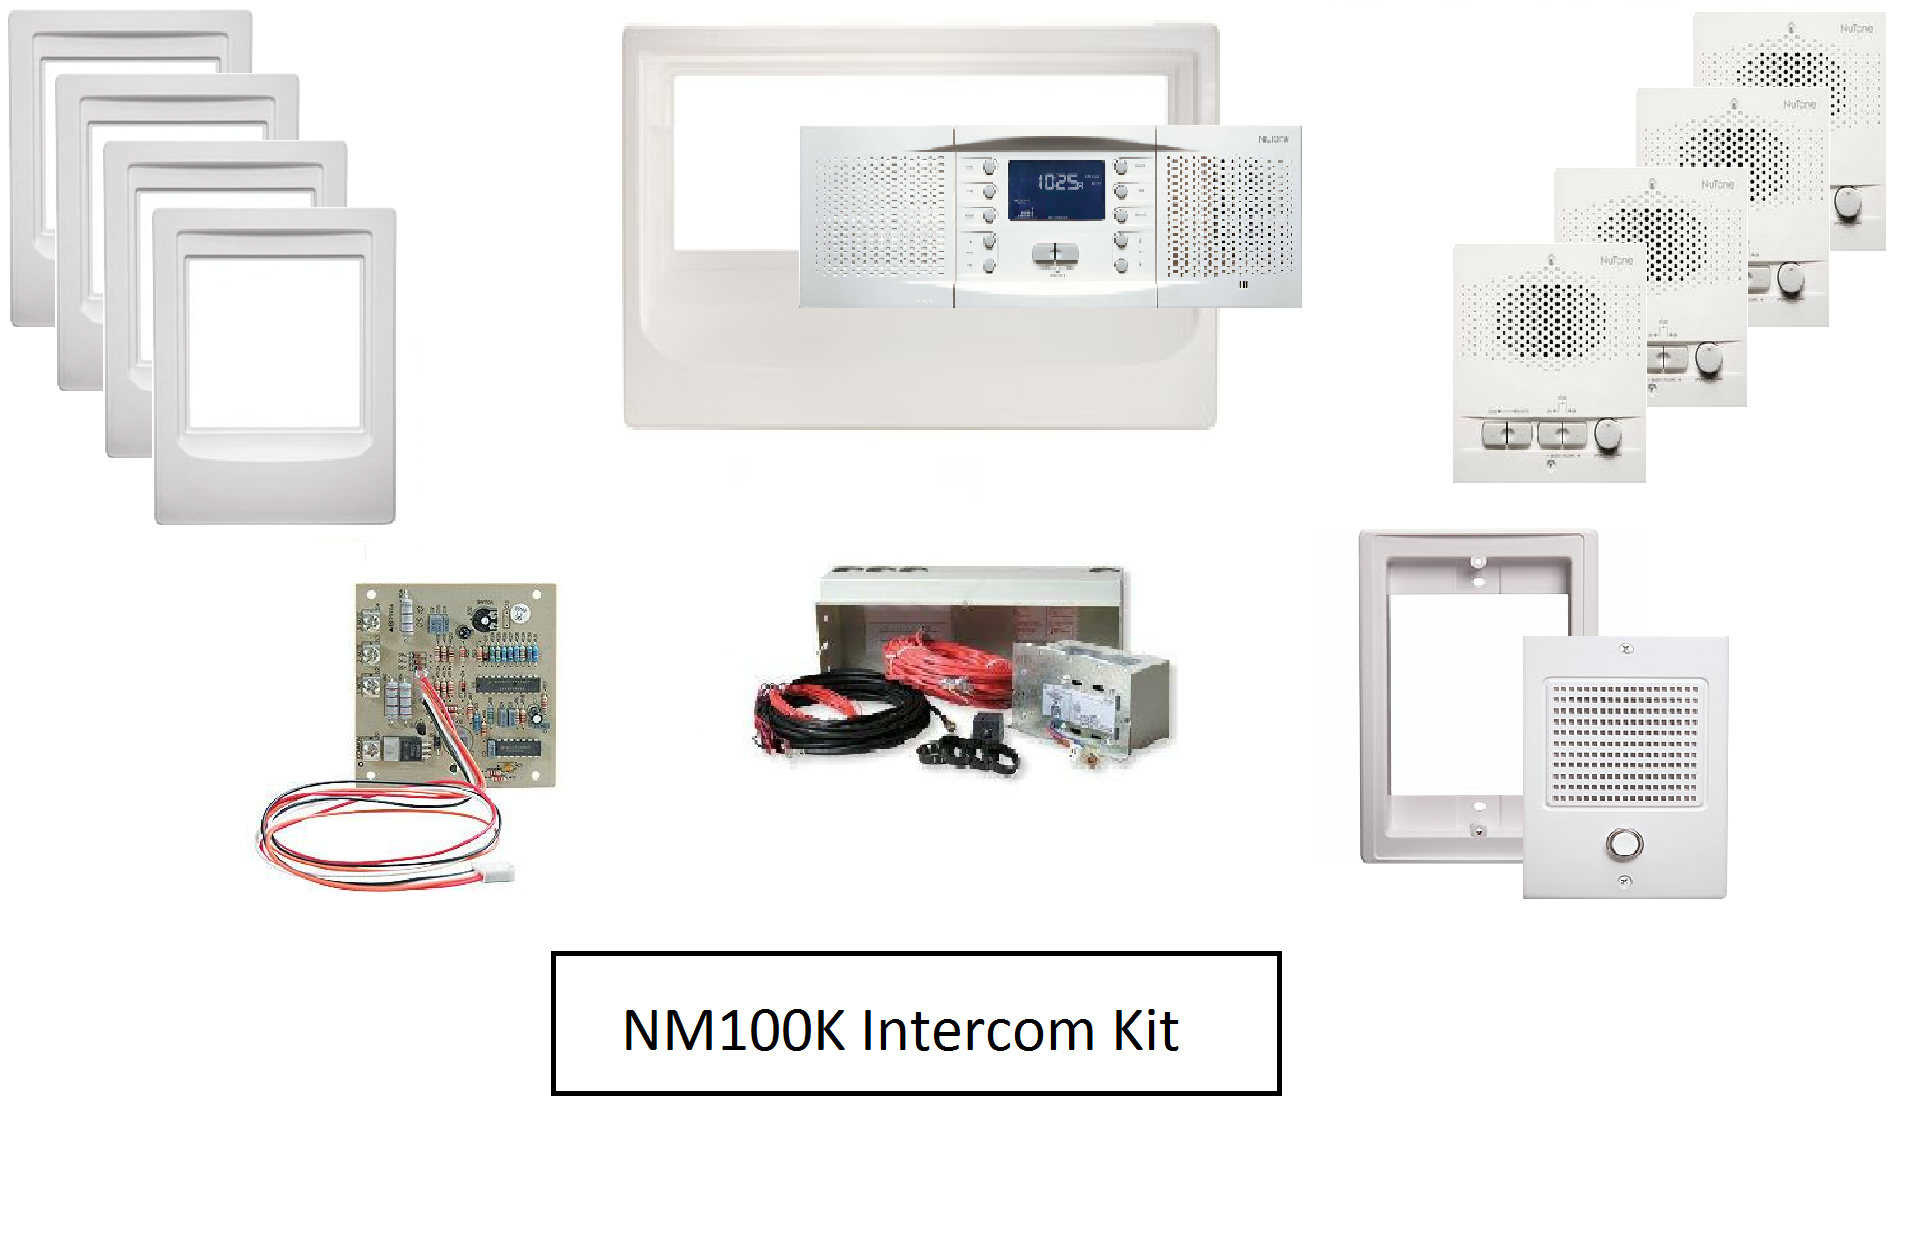 Intercom System Kit Model - Nutone NM100K - NM100K4WH